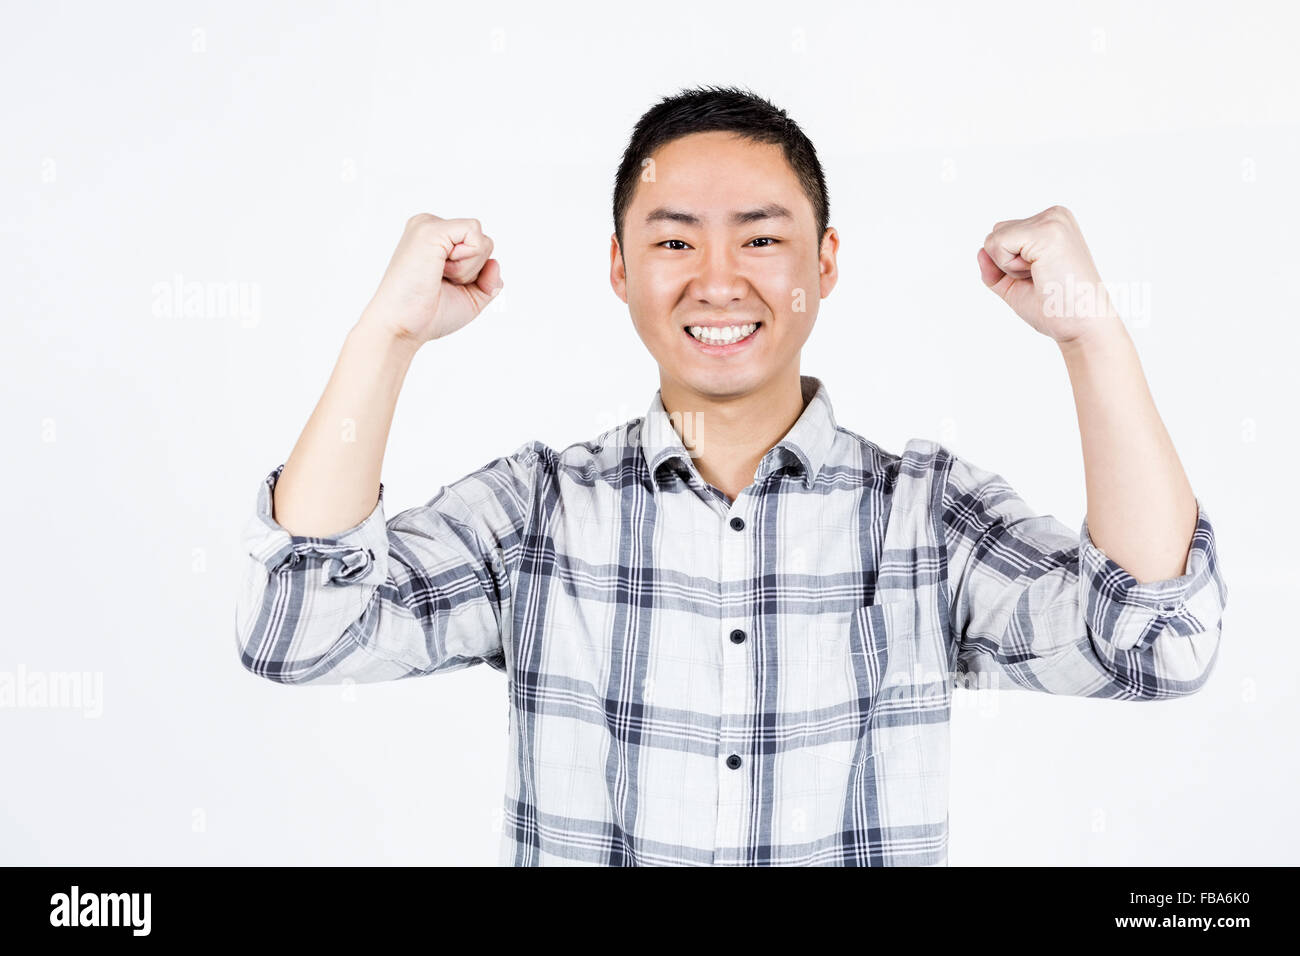 Happy man showing wining gesture - Stock Image